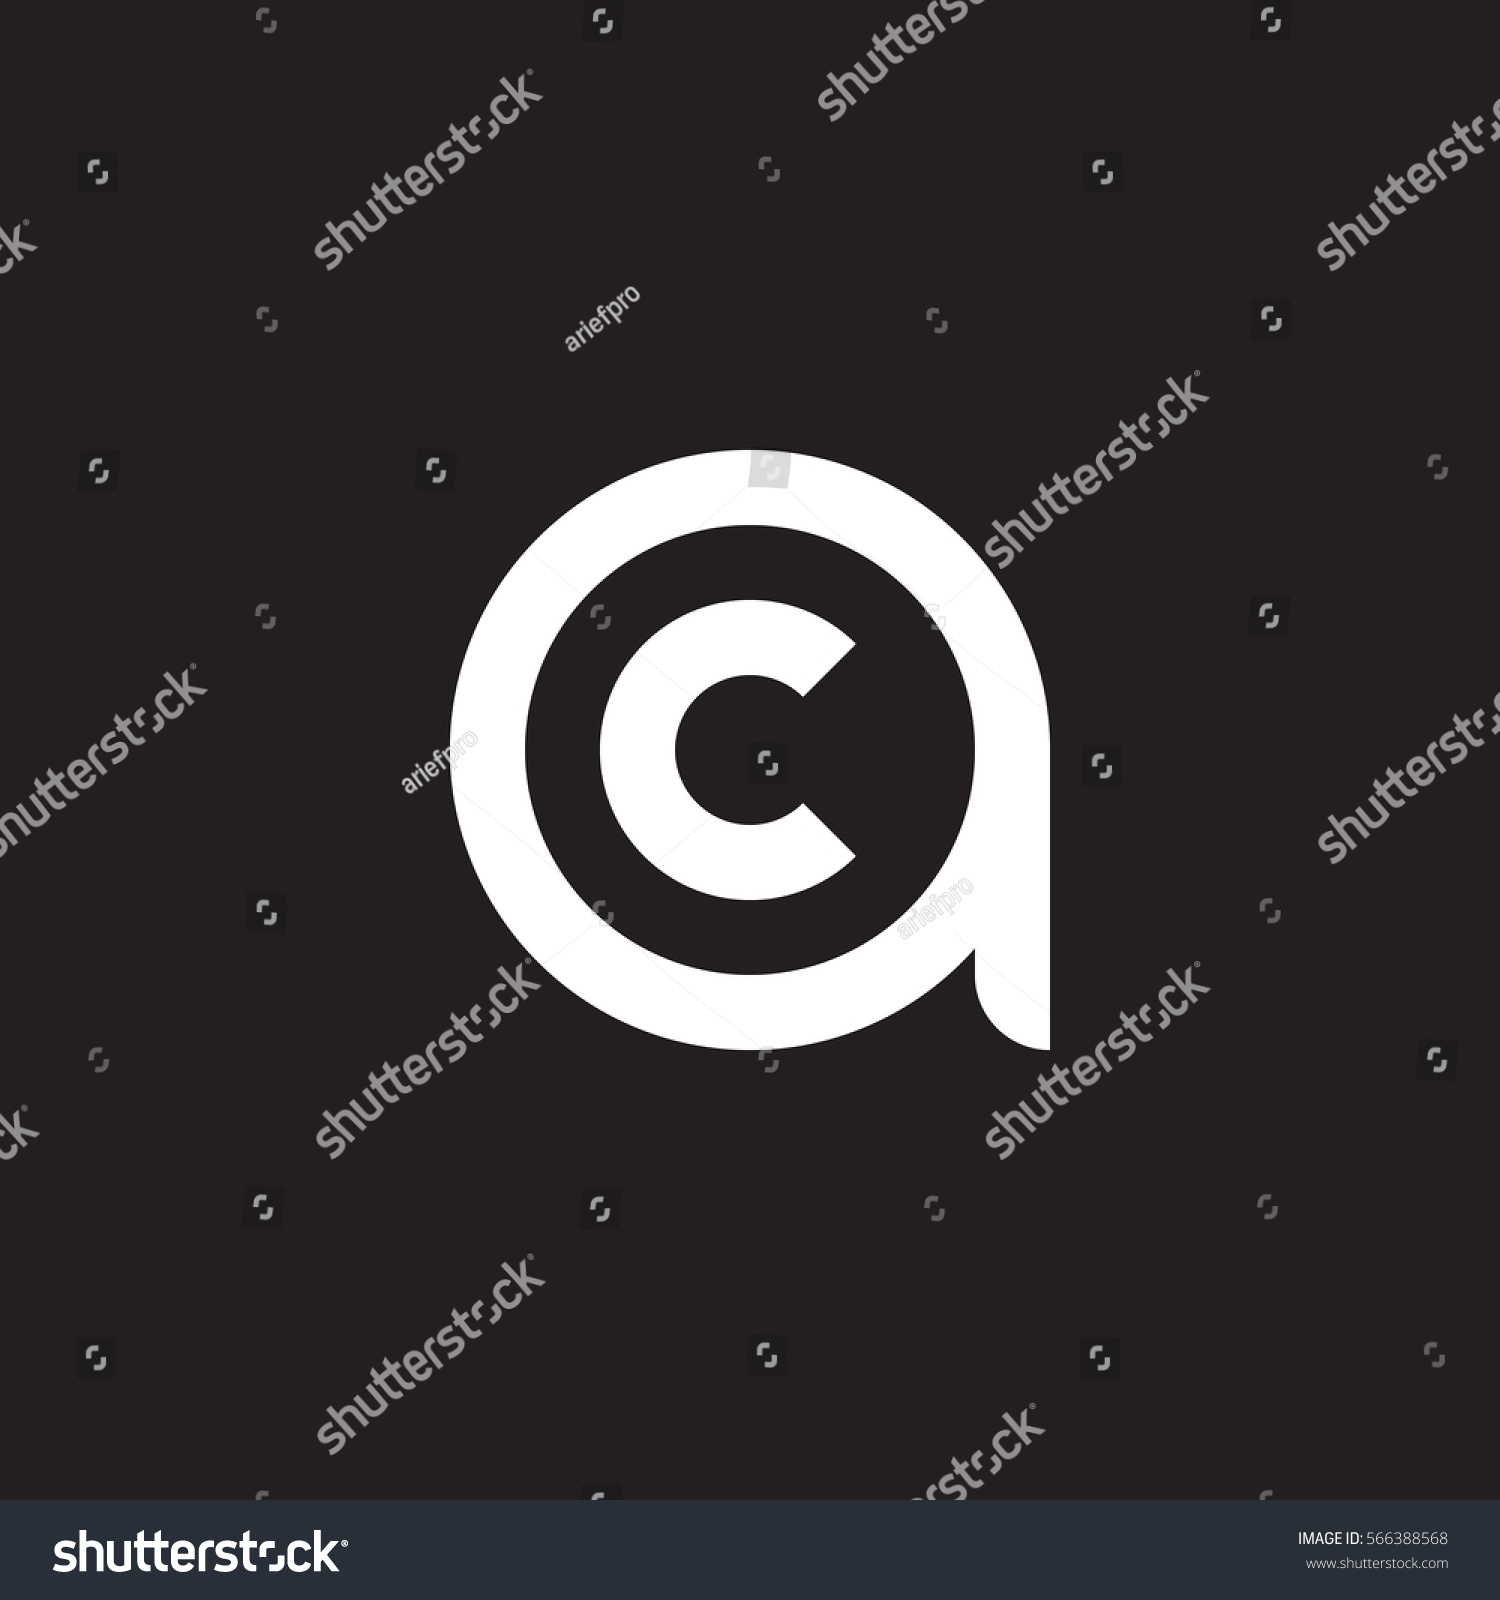 Initial letter logo ac ca c stock vector 566388568 shutterstock initial letter logo ac ca c inside a rounded lowercase white black background biocorpaavc